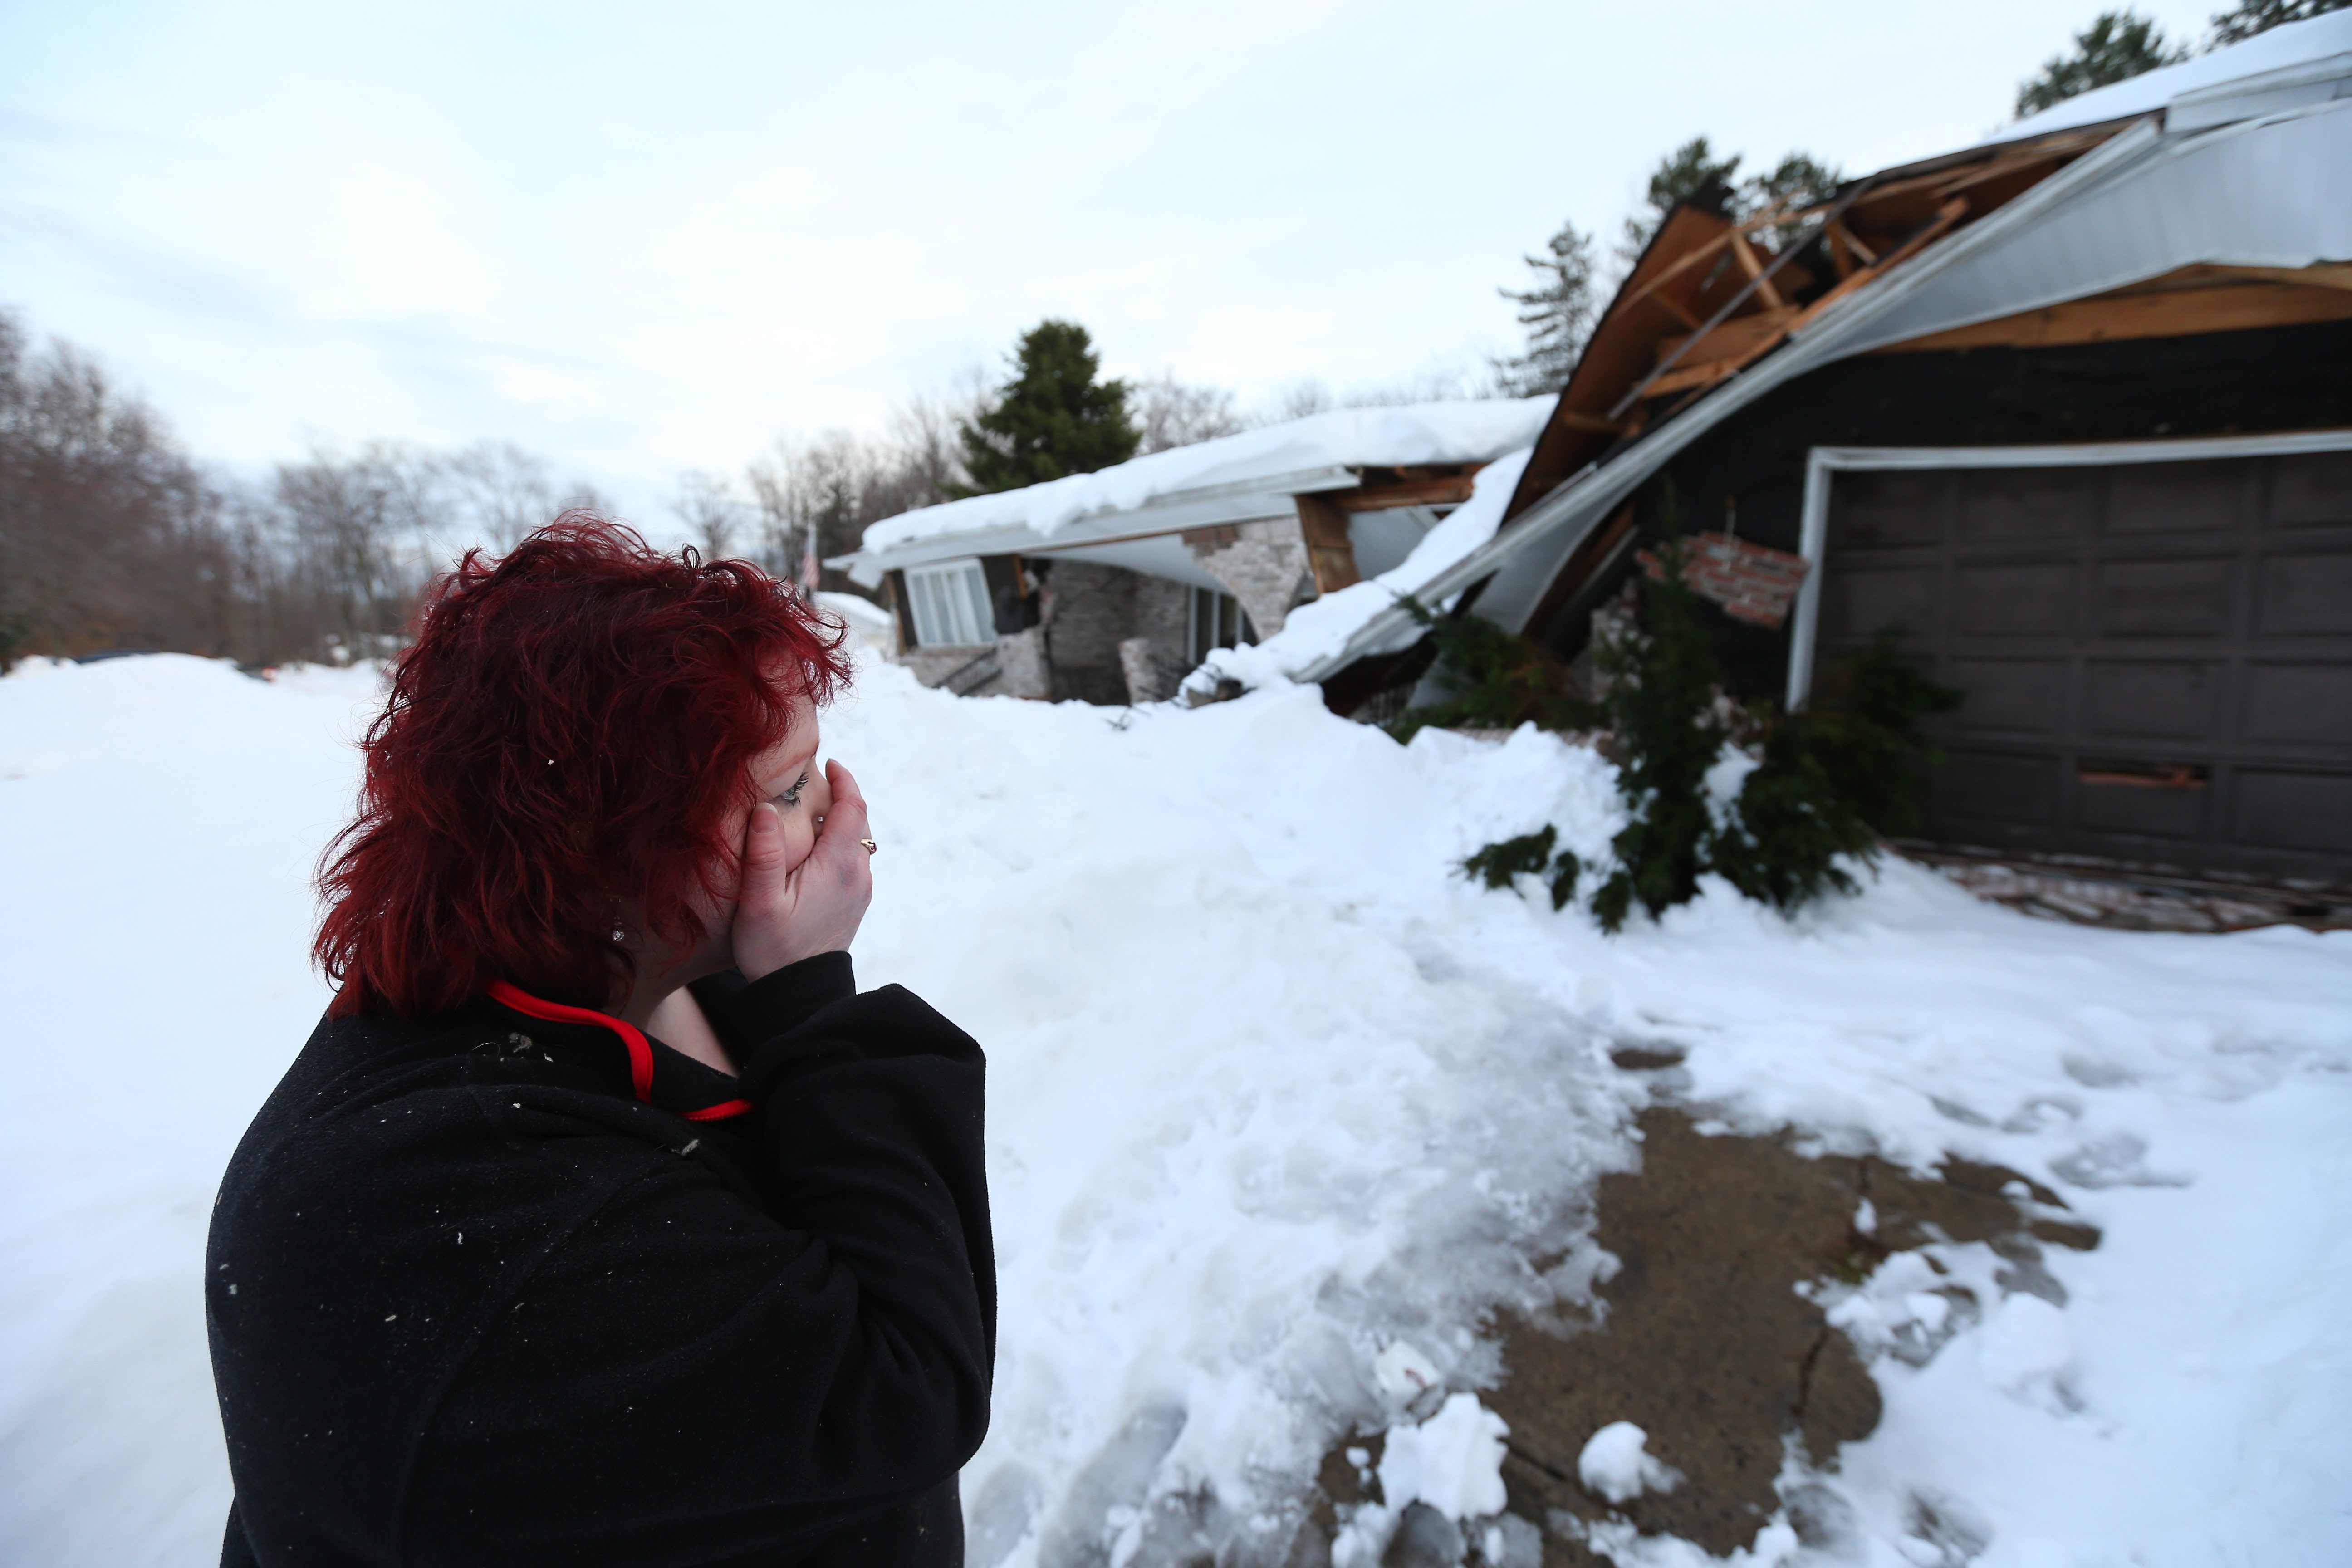 Tami Diestler is distraught as she checks damage to the Alden home she and husband Michael escaped early Thursday when snow caused a cave-in.